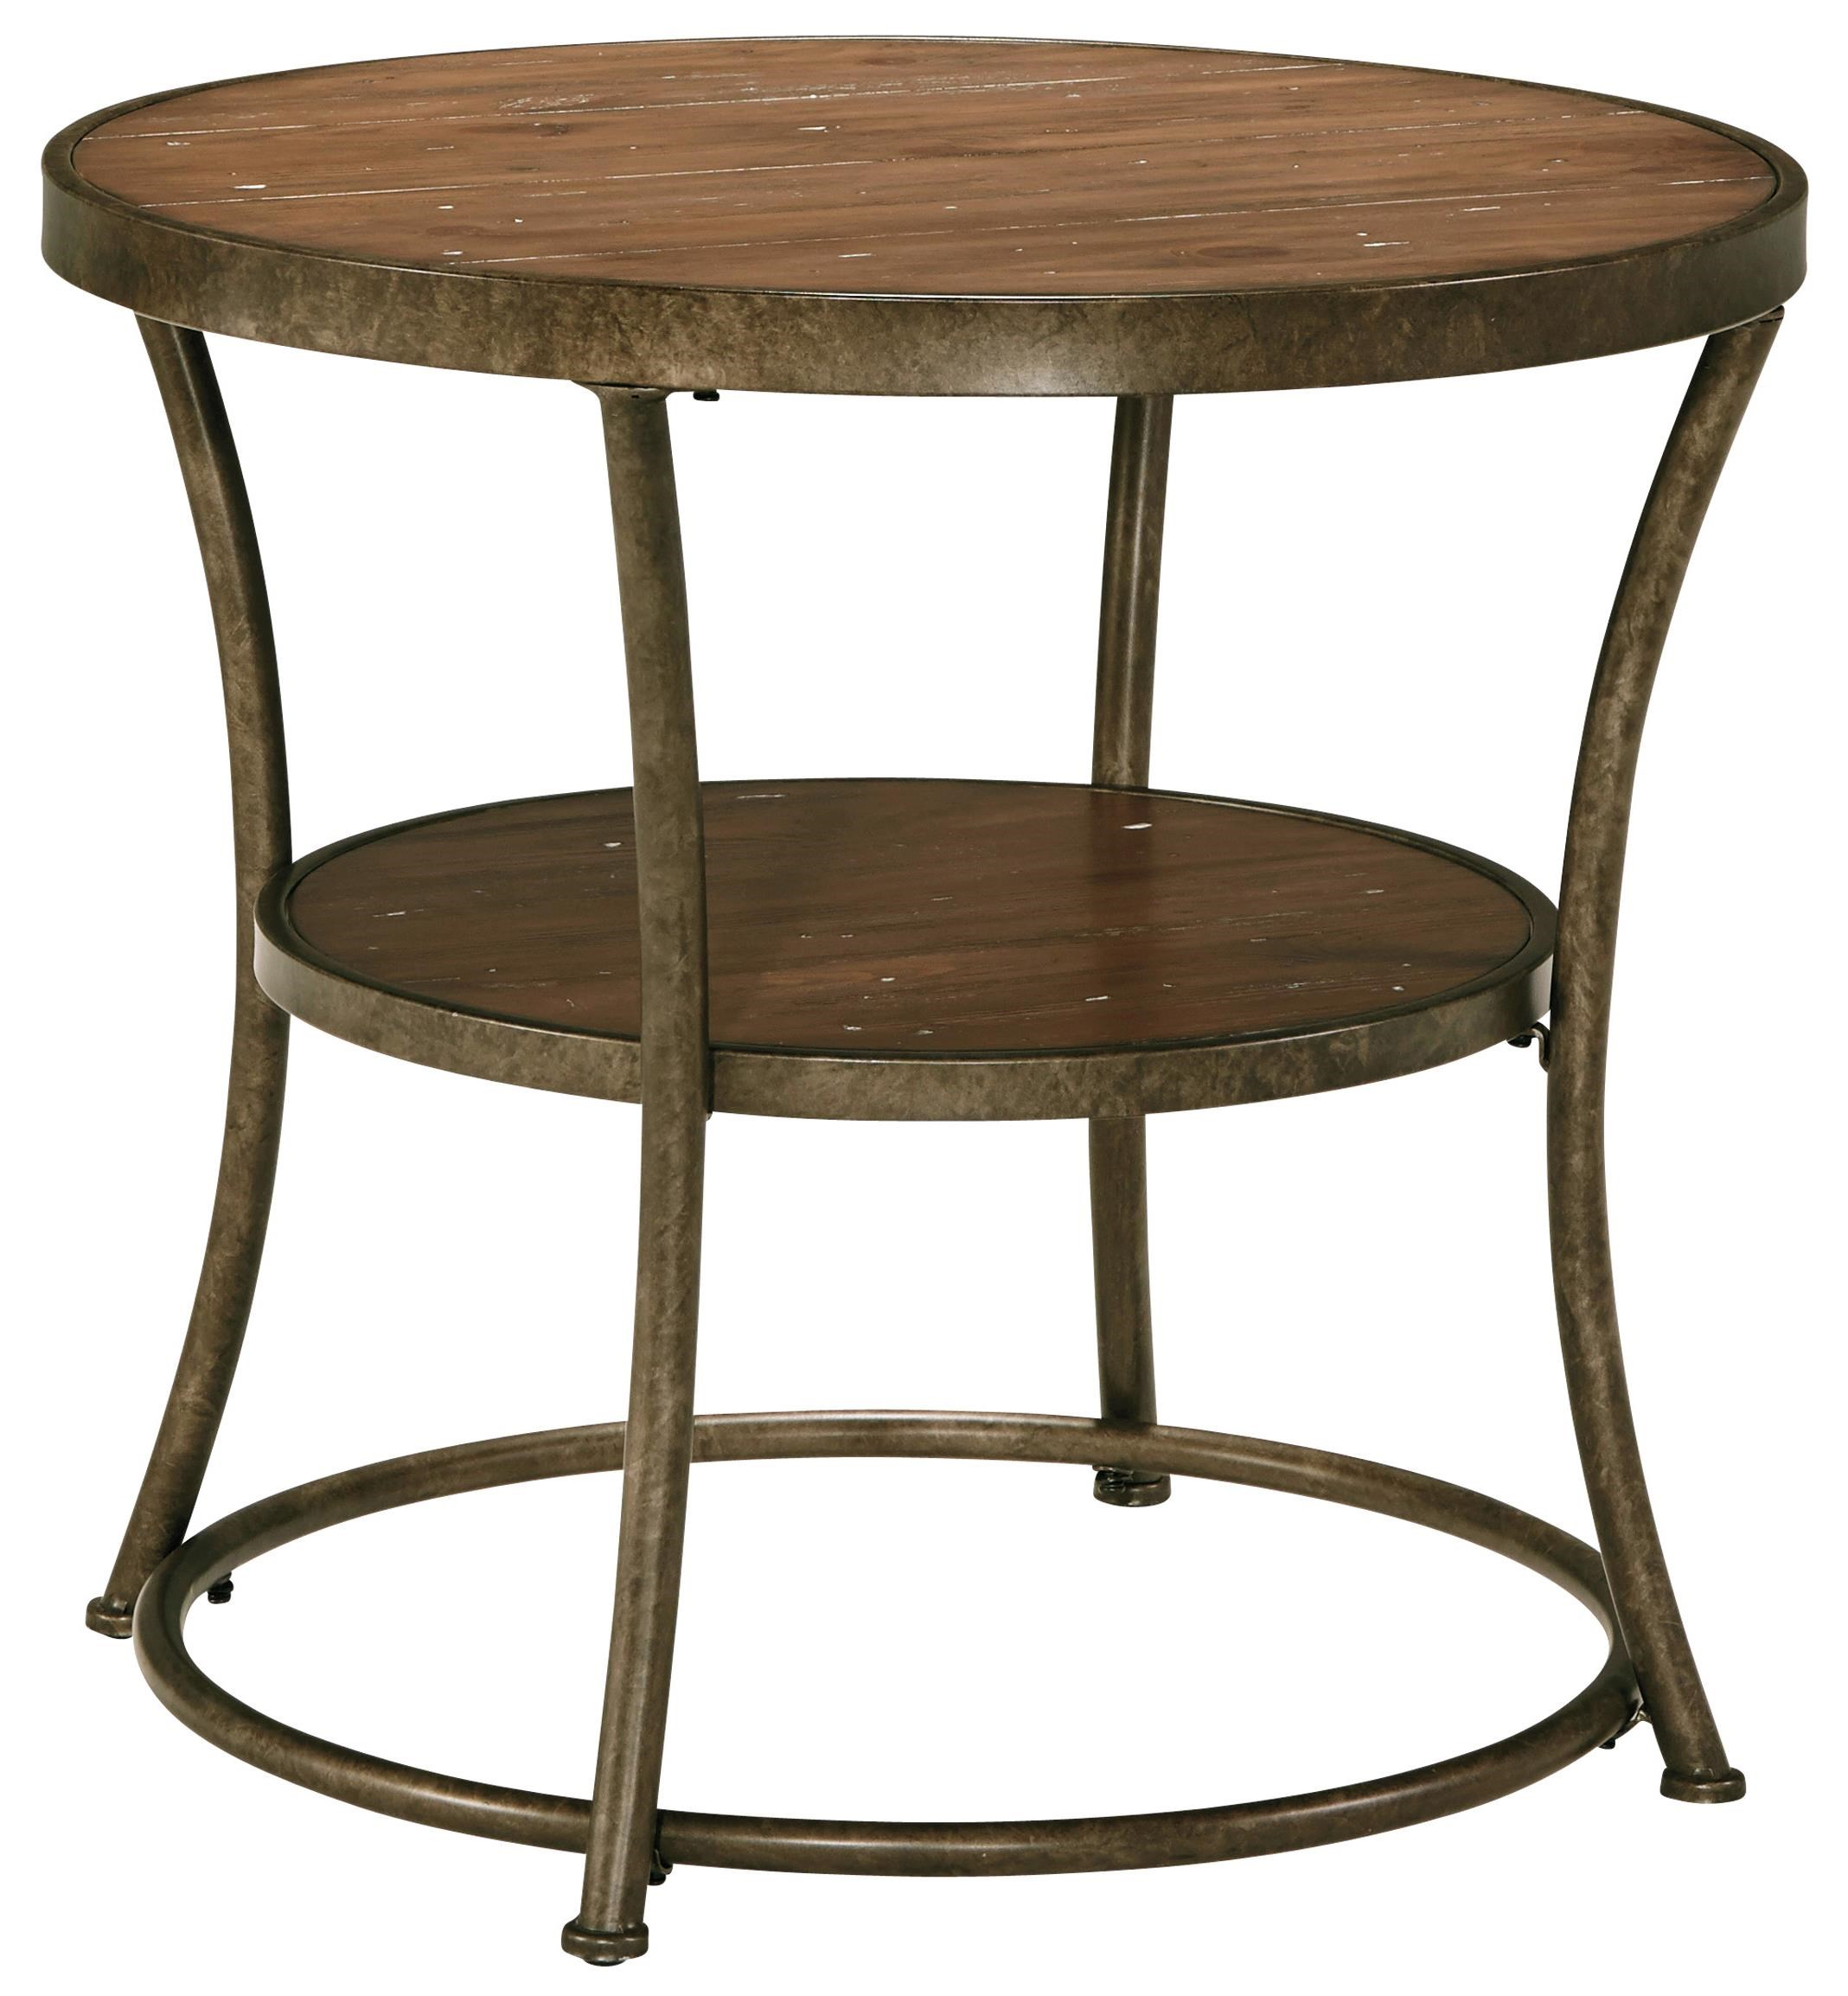 Signature Design By Ashley Nartina Rustic Metal Frame Round End Table With  Distressed Pine Top U0026 Shelf   Household Furniture   End Table